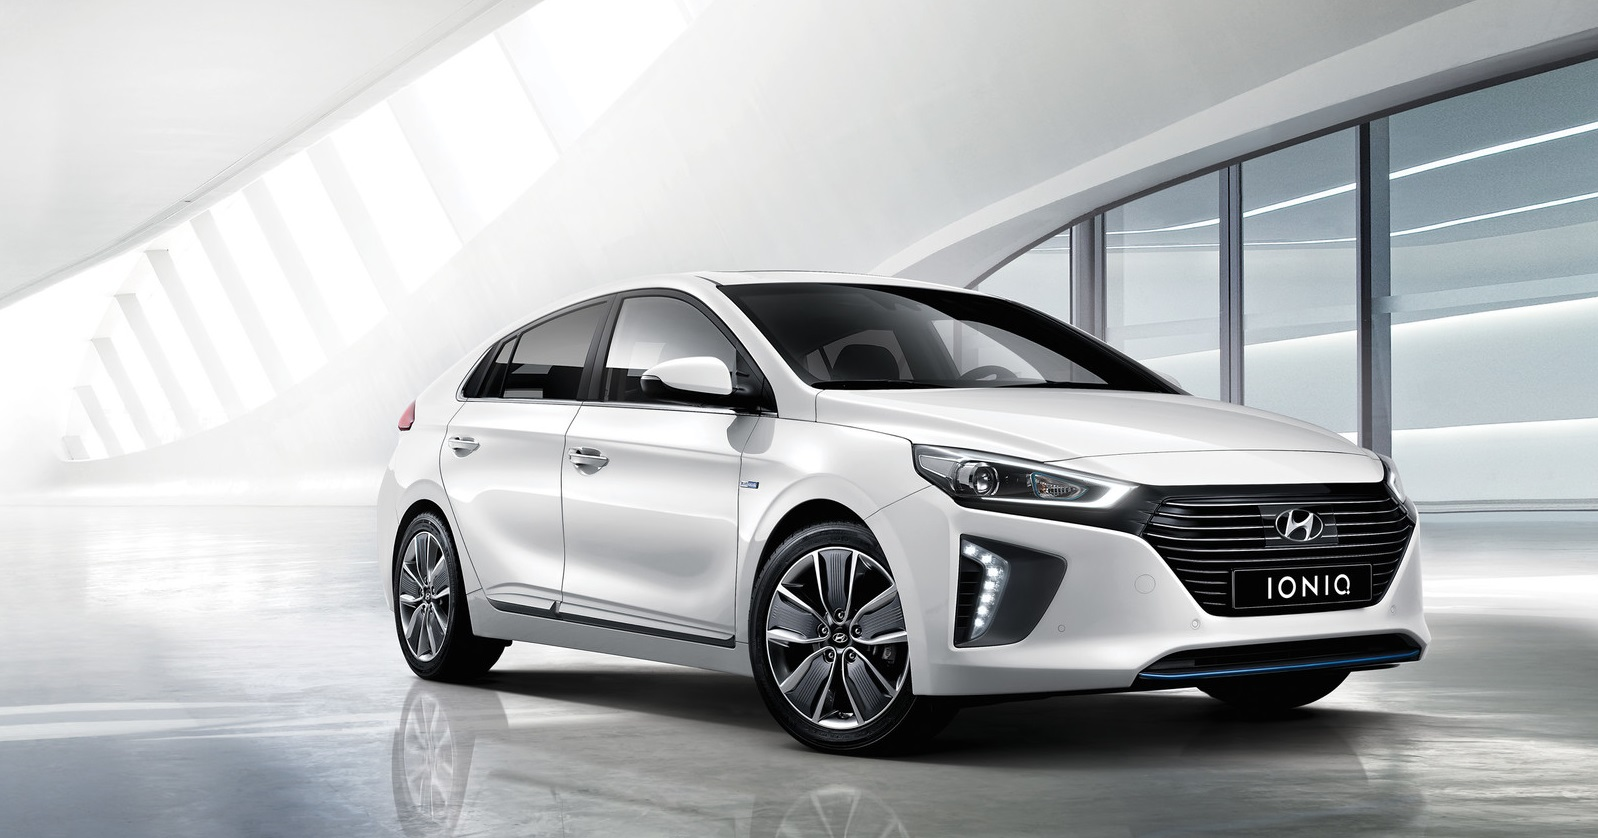 IONIQ - what is a hybrid car?